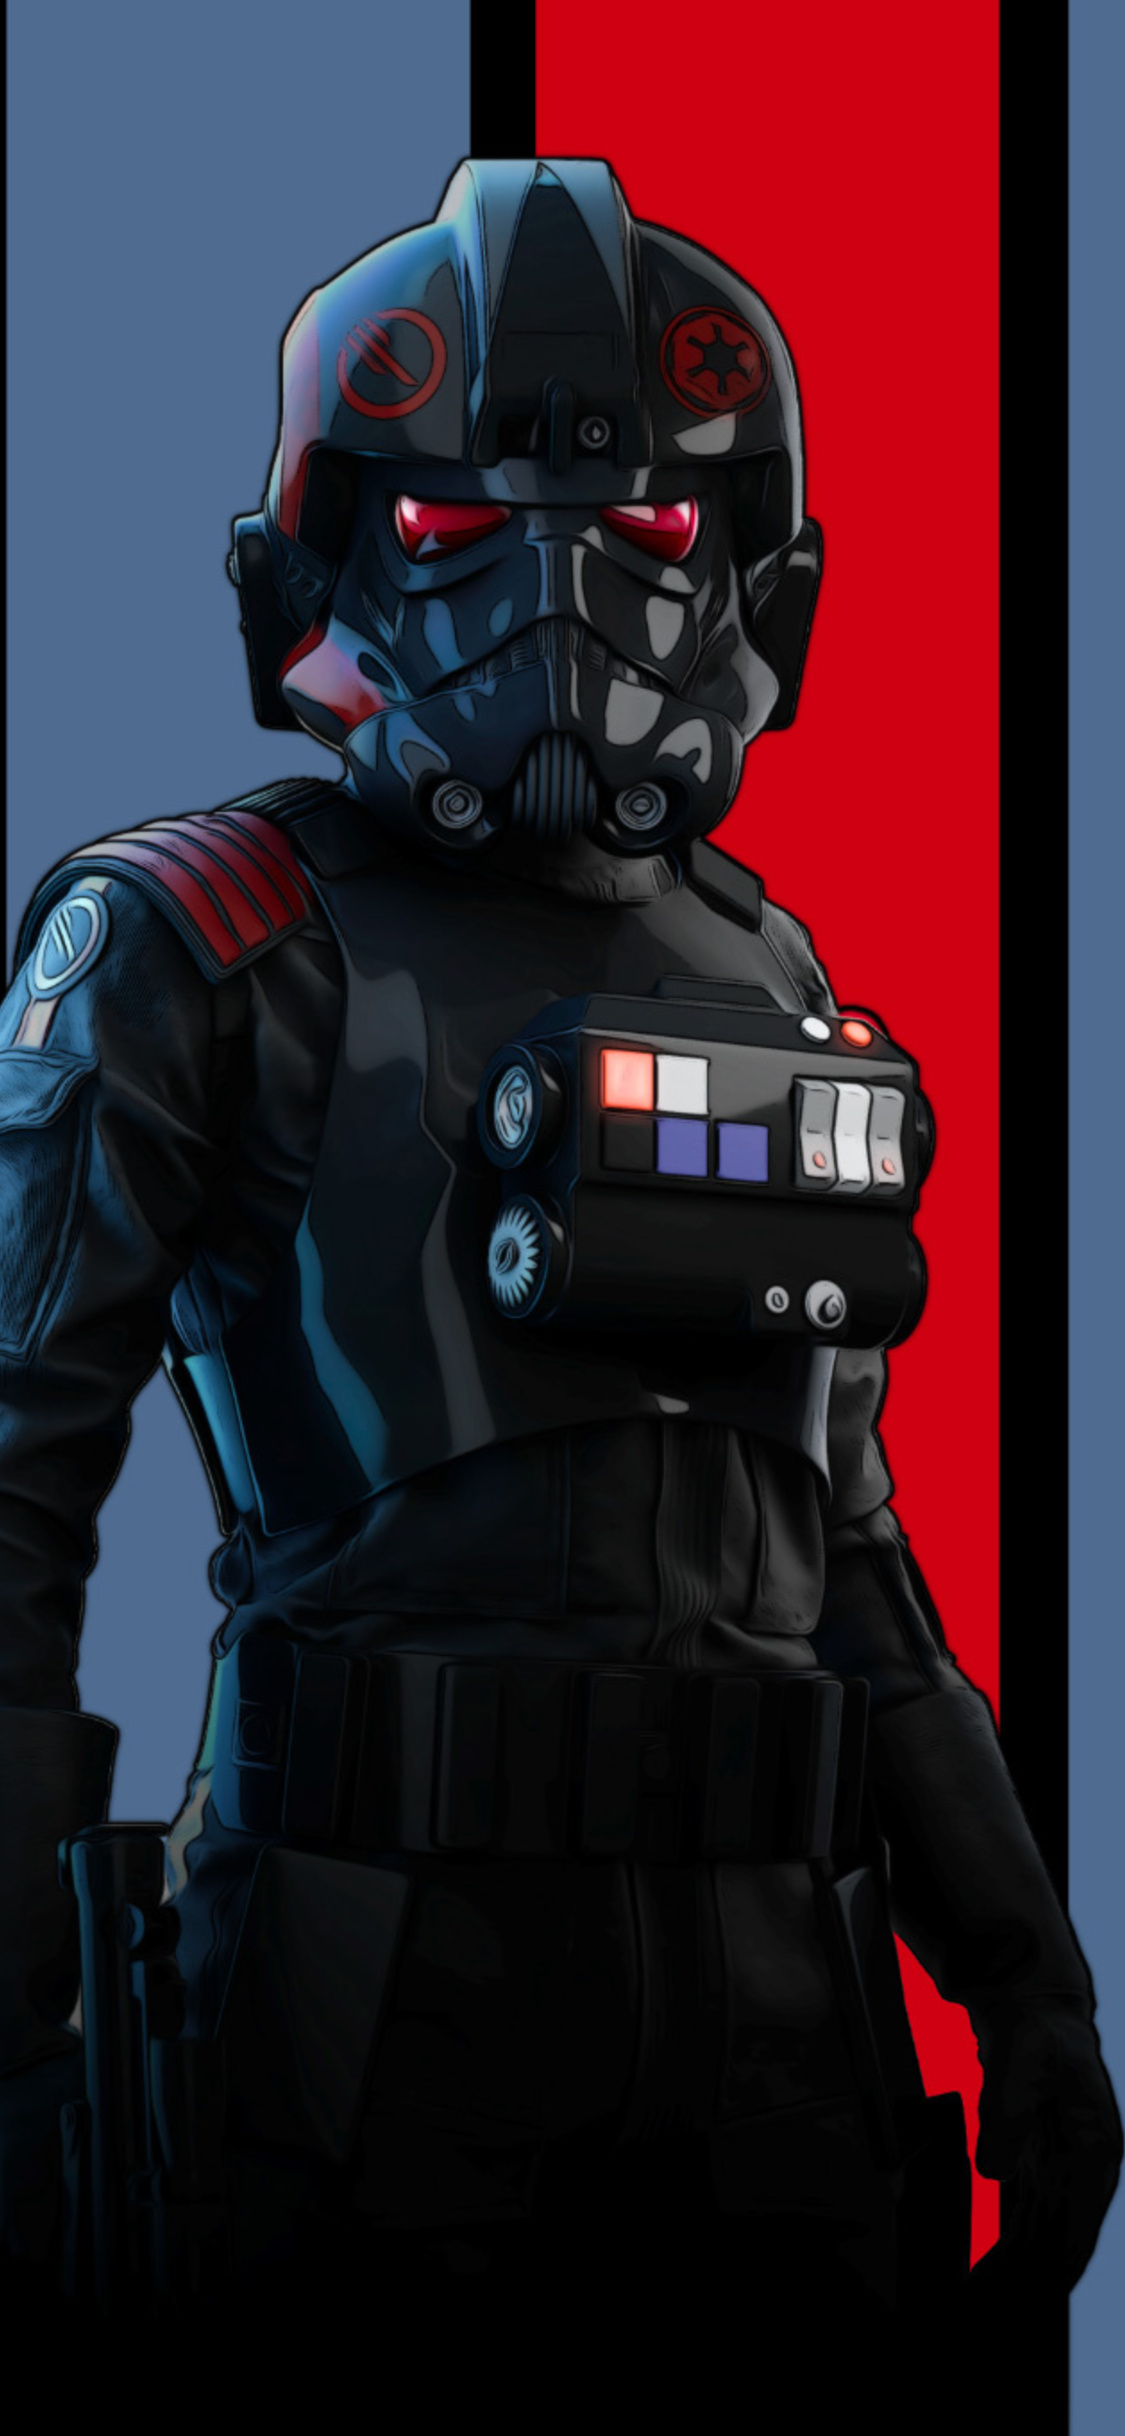 star wars battlefront 2 dark artwork za